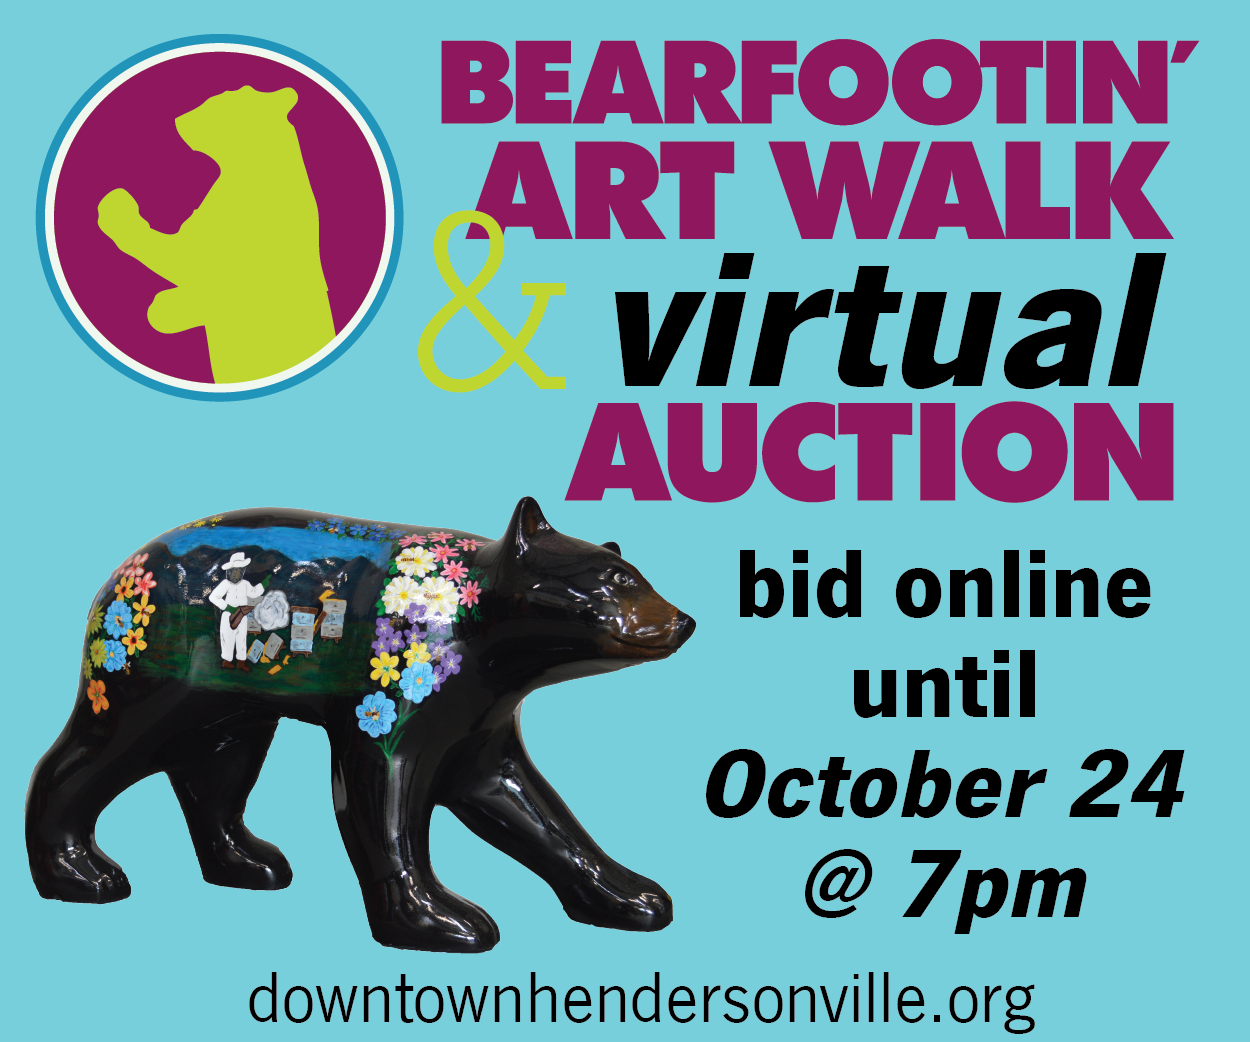 Bearfootin' Virtual Auction - downtownhendersonville.org